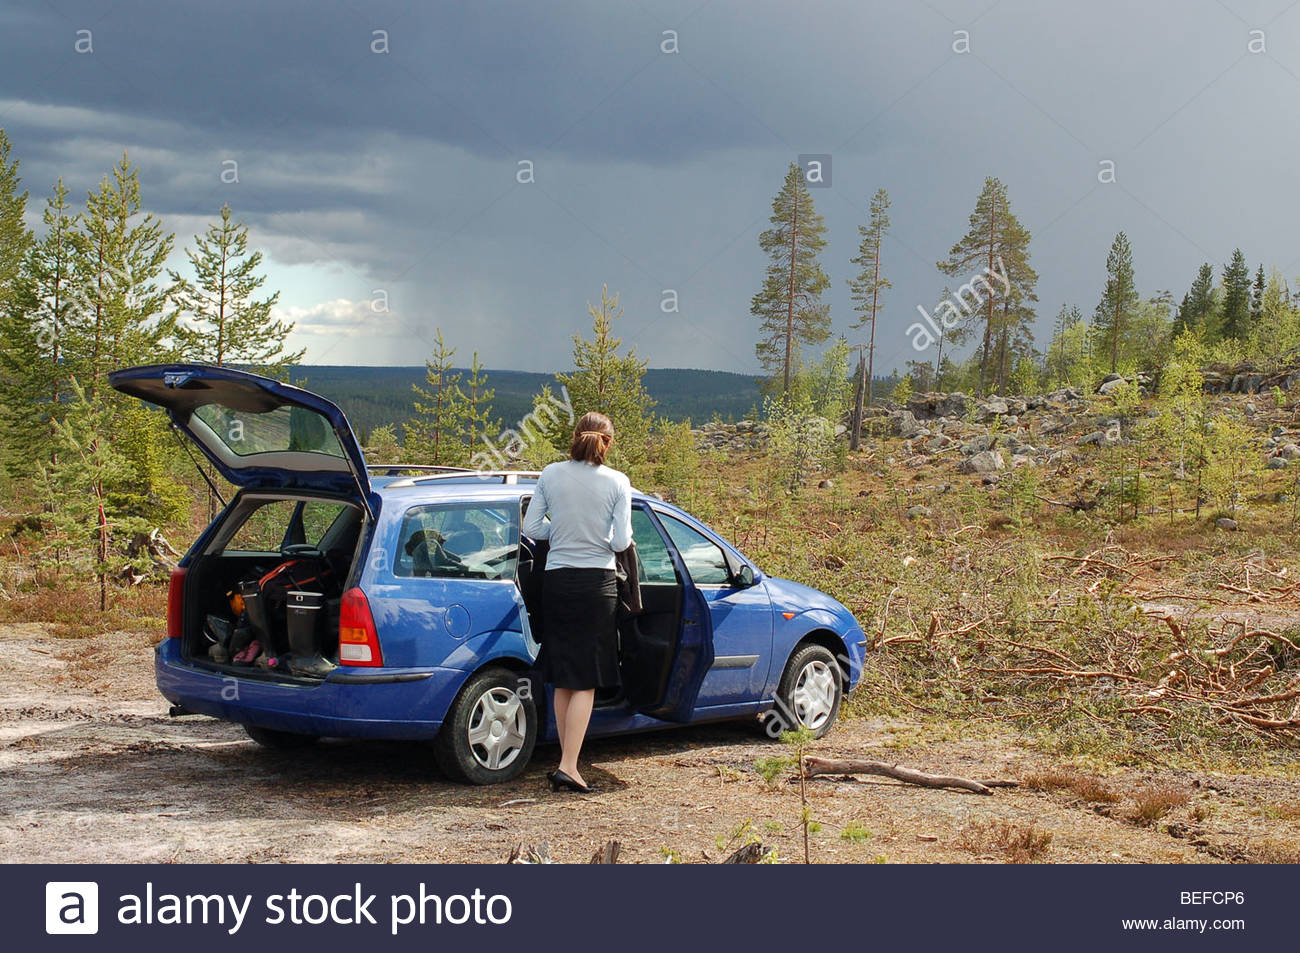 Changing clothes in a car - Stock Photo Woman Changing Clothes From Urban Dress To Outdoors Gear Rovaniemi Finland